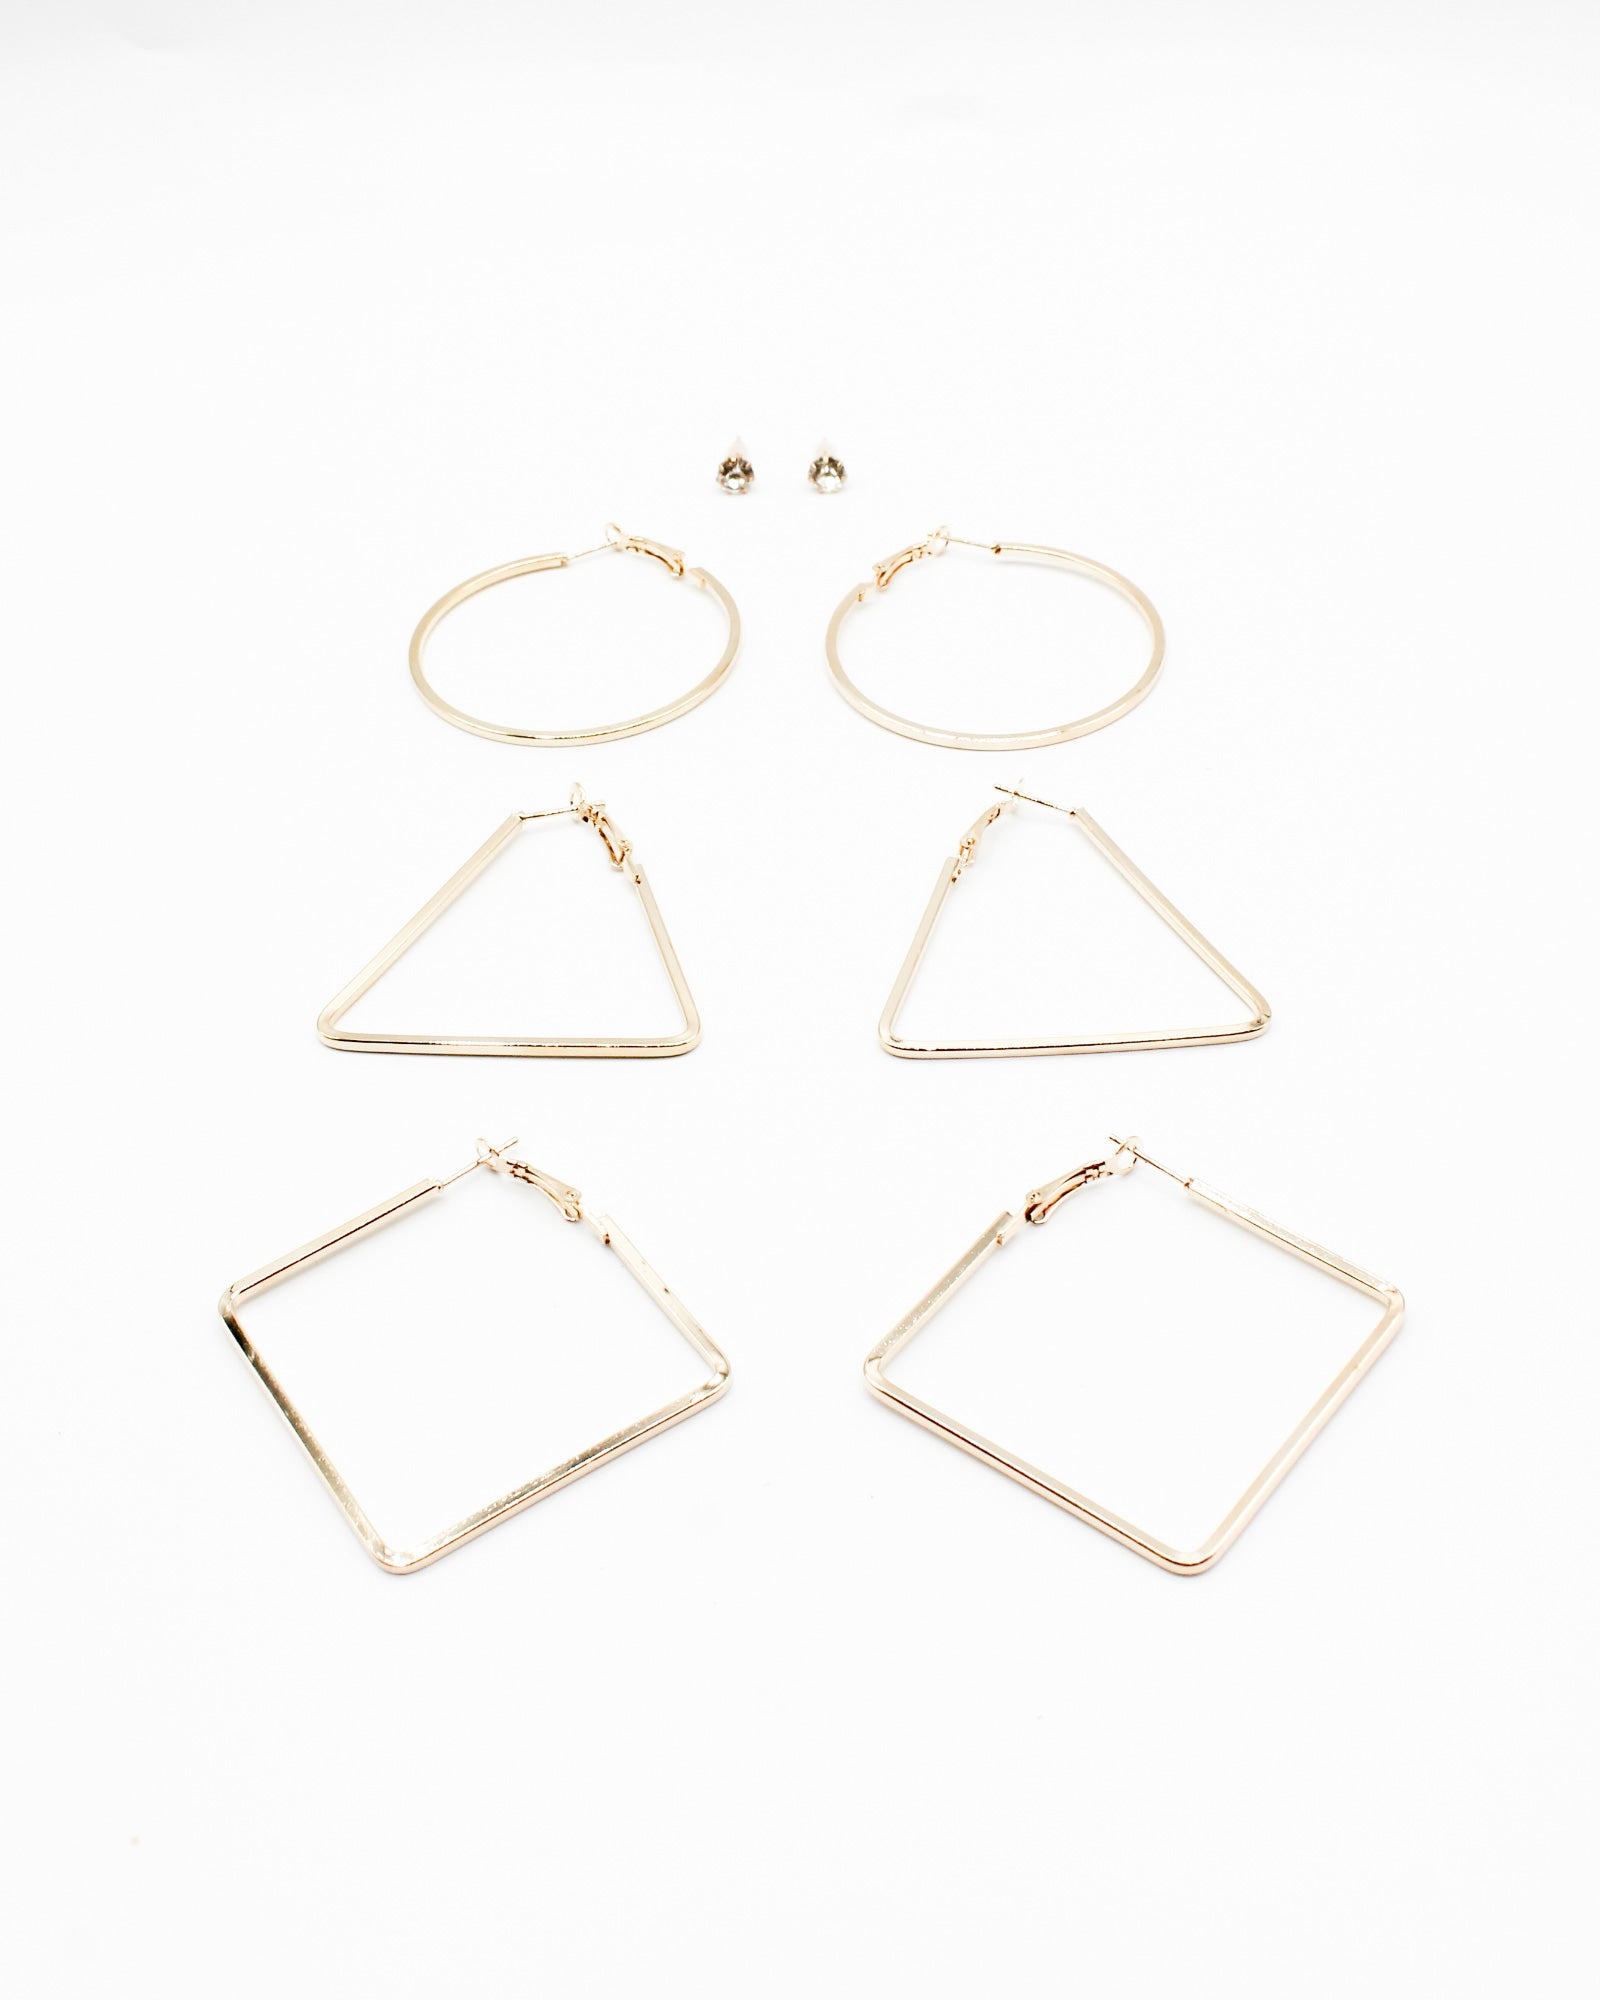 Fashion Q Shop Q Don't Forget to Have a Good Time Earring Set (Gold) ER-919